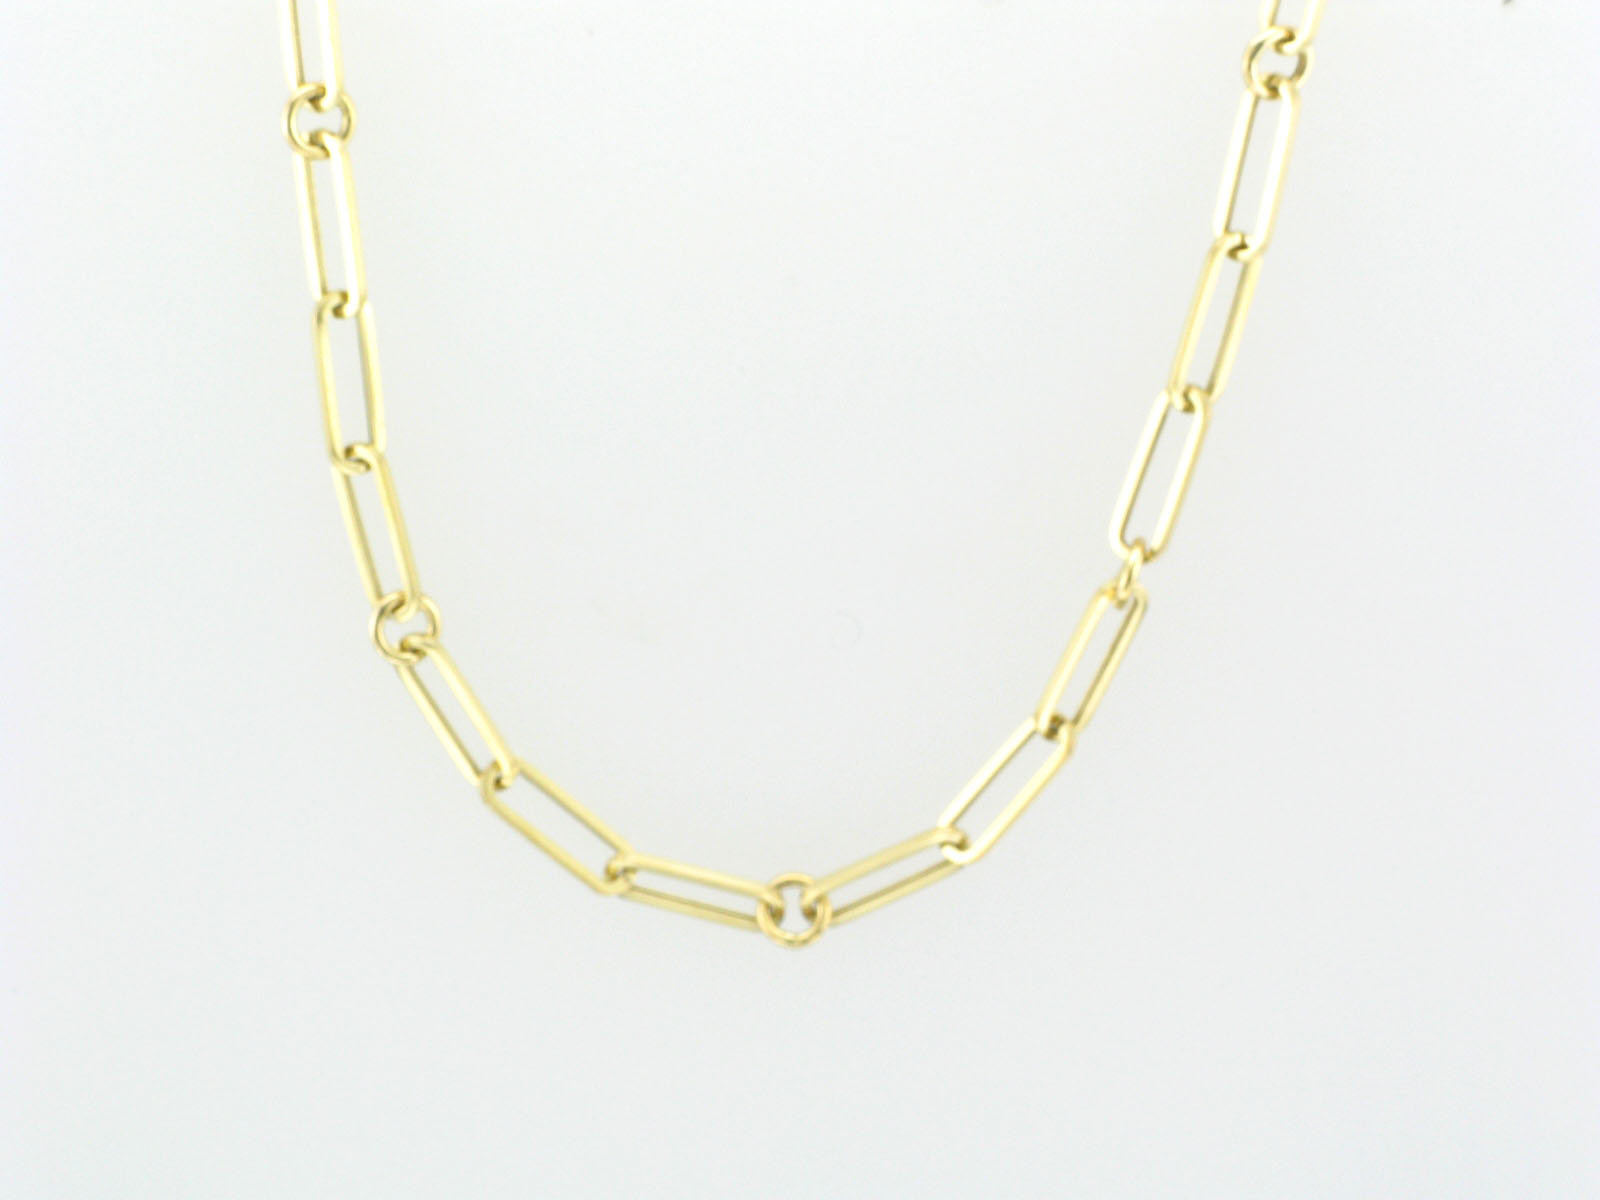 18K Yellow Gold Paperclip Chain